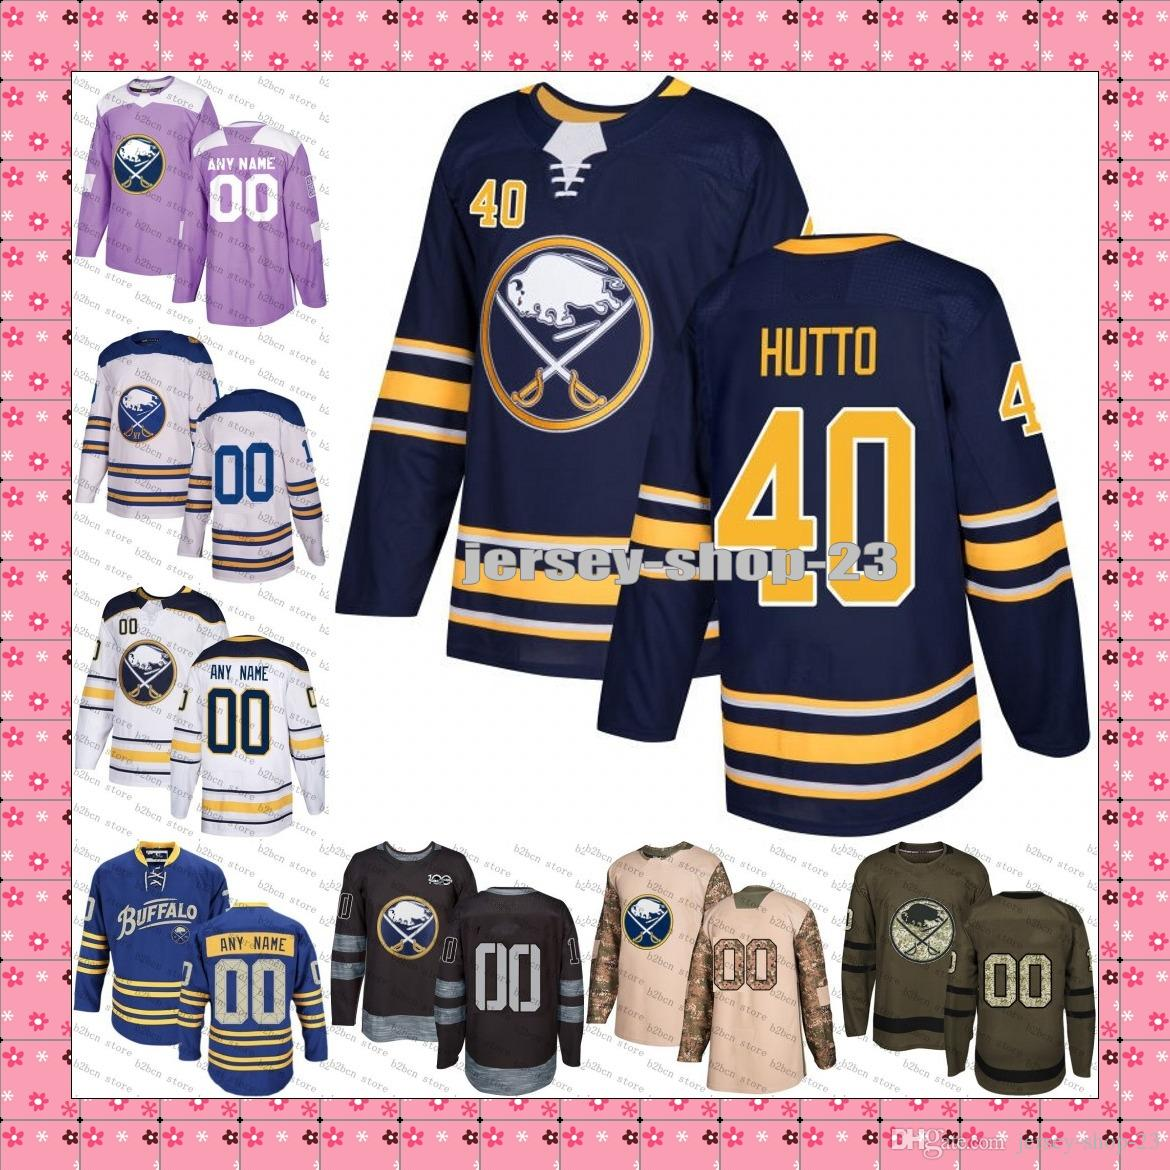 separation shoes 89a89 8e1ec 2018 New Buffalo Sabres Mens 40 Carter Hutton Royal Blue navy White green  purple ice Hockey Jersey Stitched S-3XL